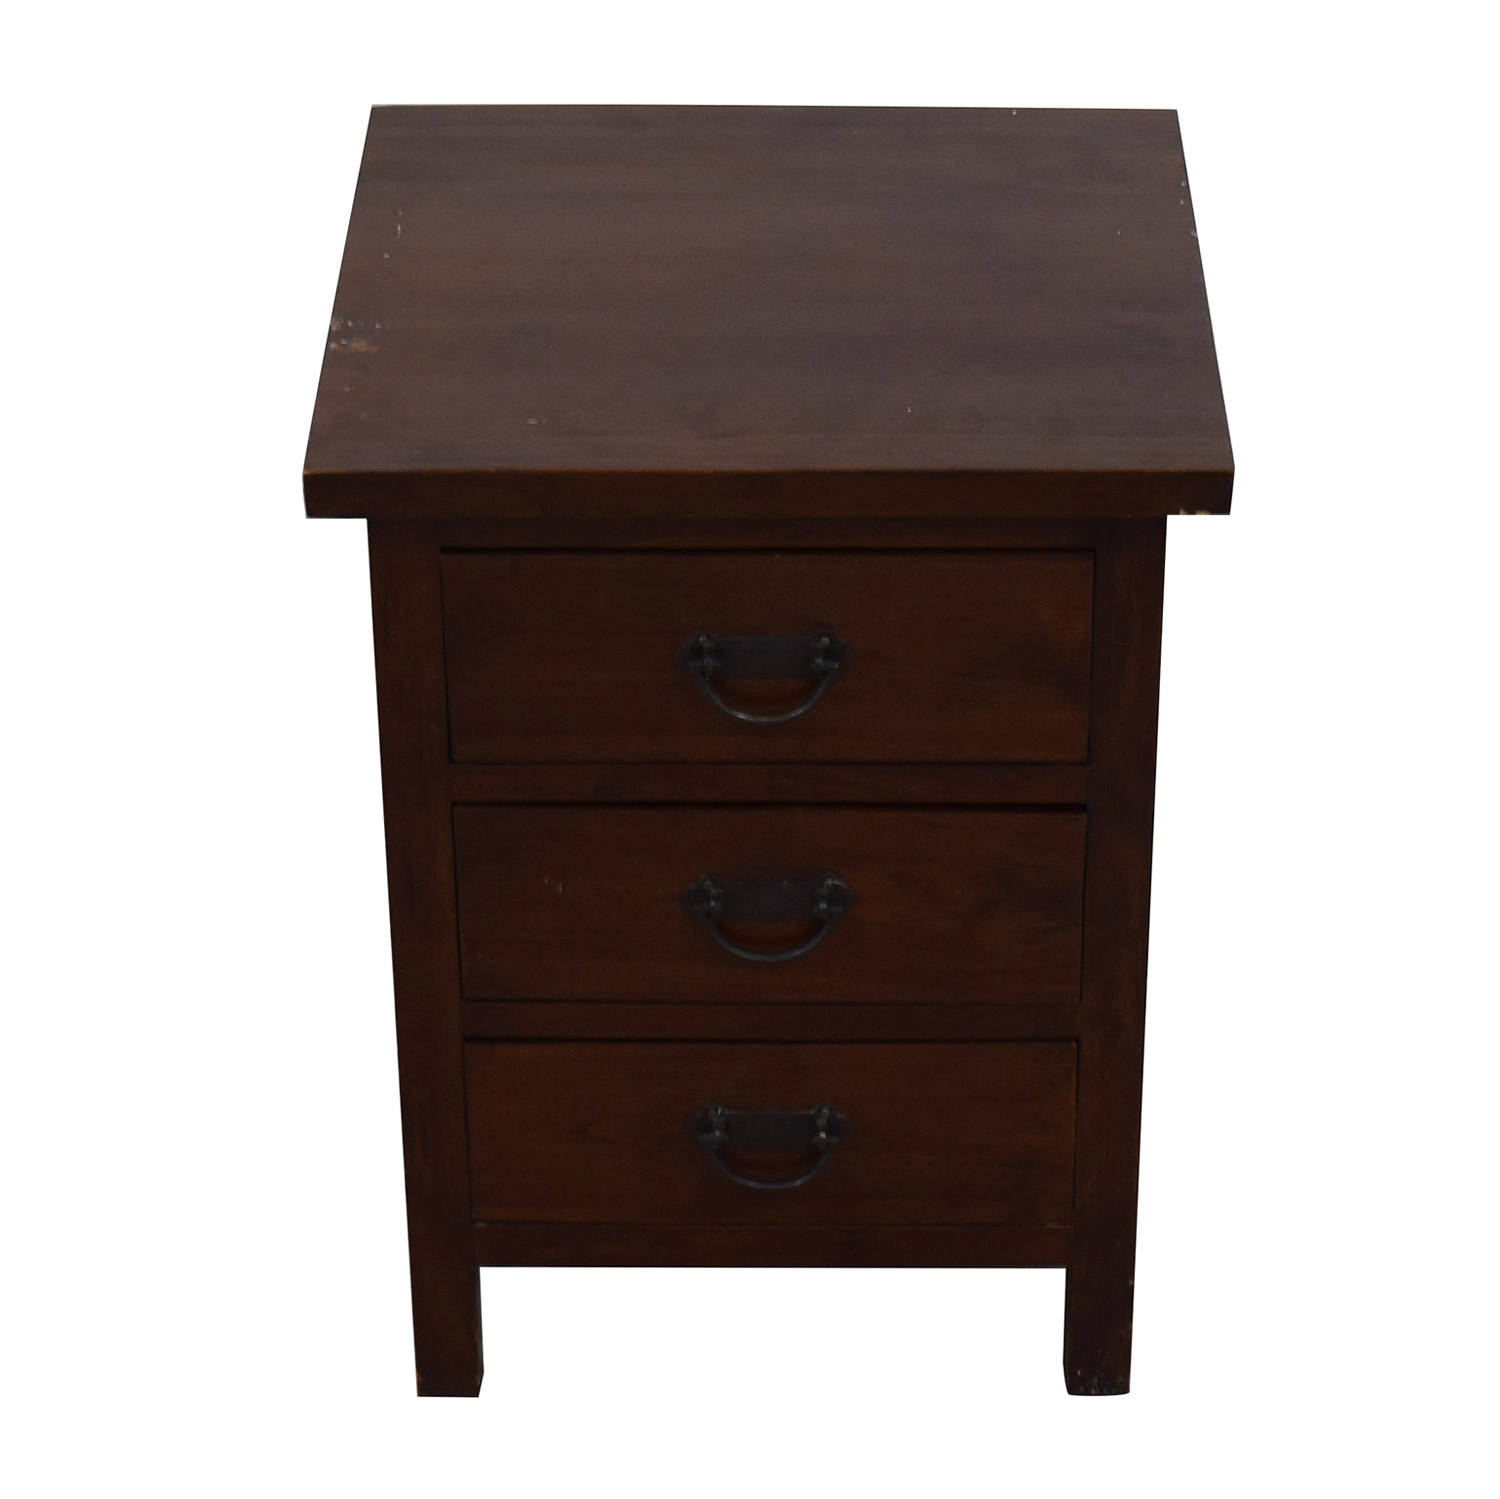 Crate & Barrel Crate & Barrel Nightstand with Drawers dimensions